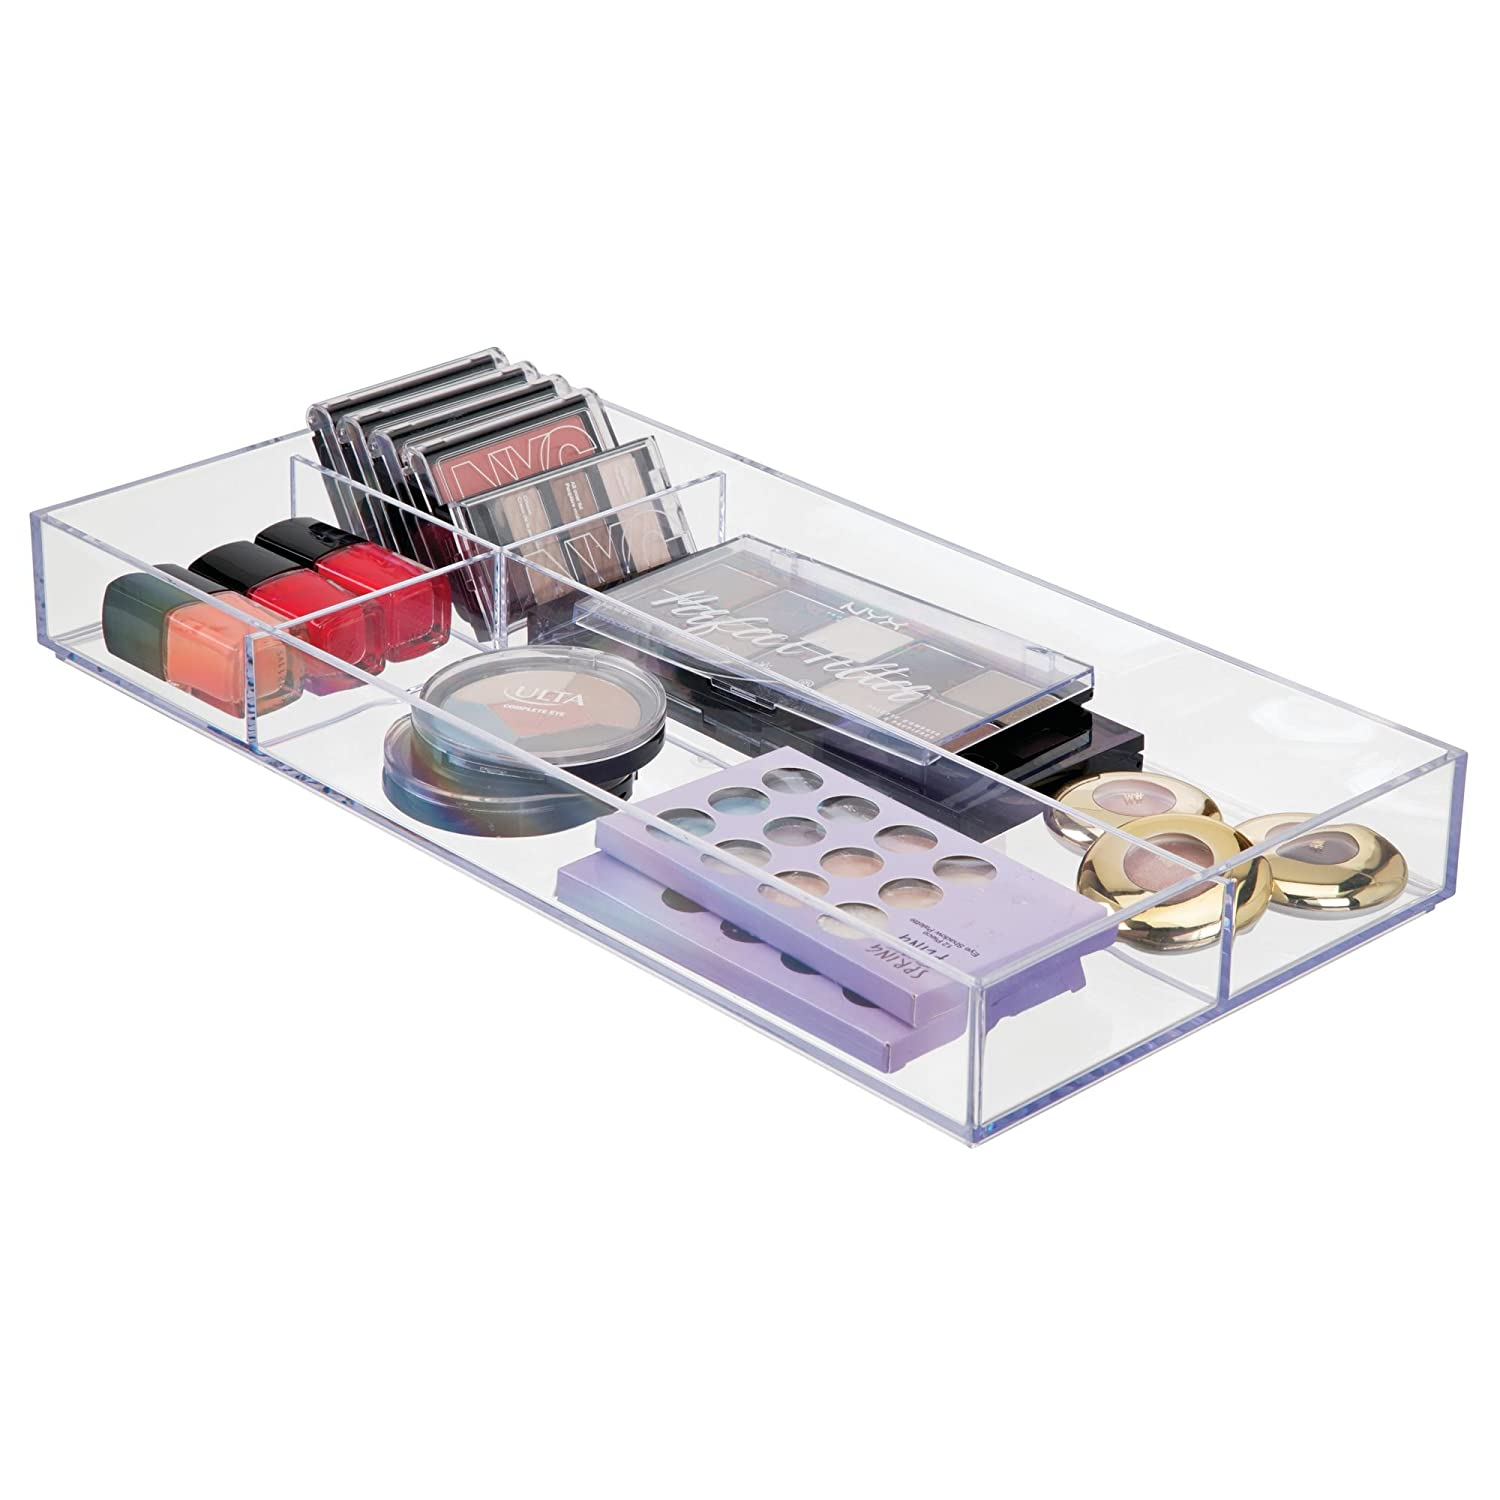 mDesign Cosmetic Drawer Organizer for Makeup Brushes, Eye Shadow, Blush - 20 x 40.5 x 5 cm, Clear MetroDecor 0124MDC